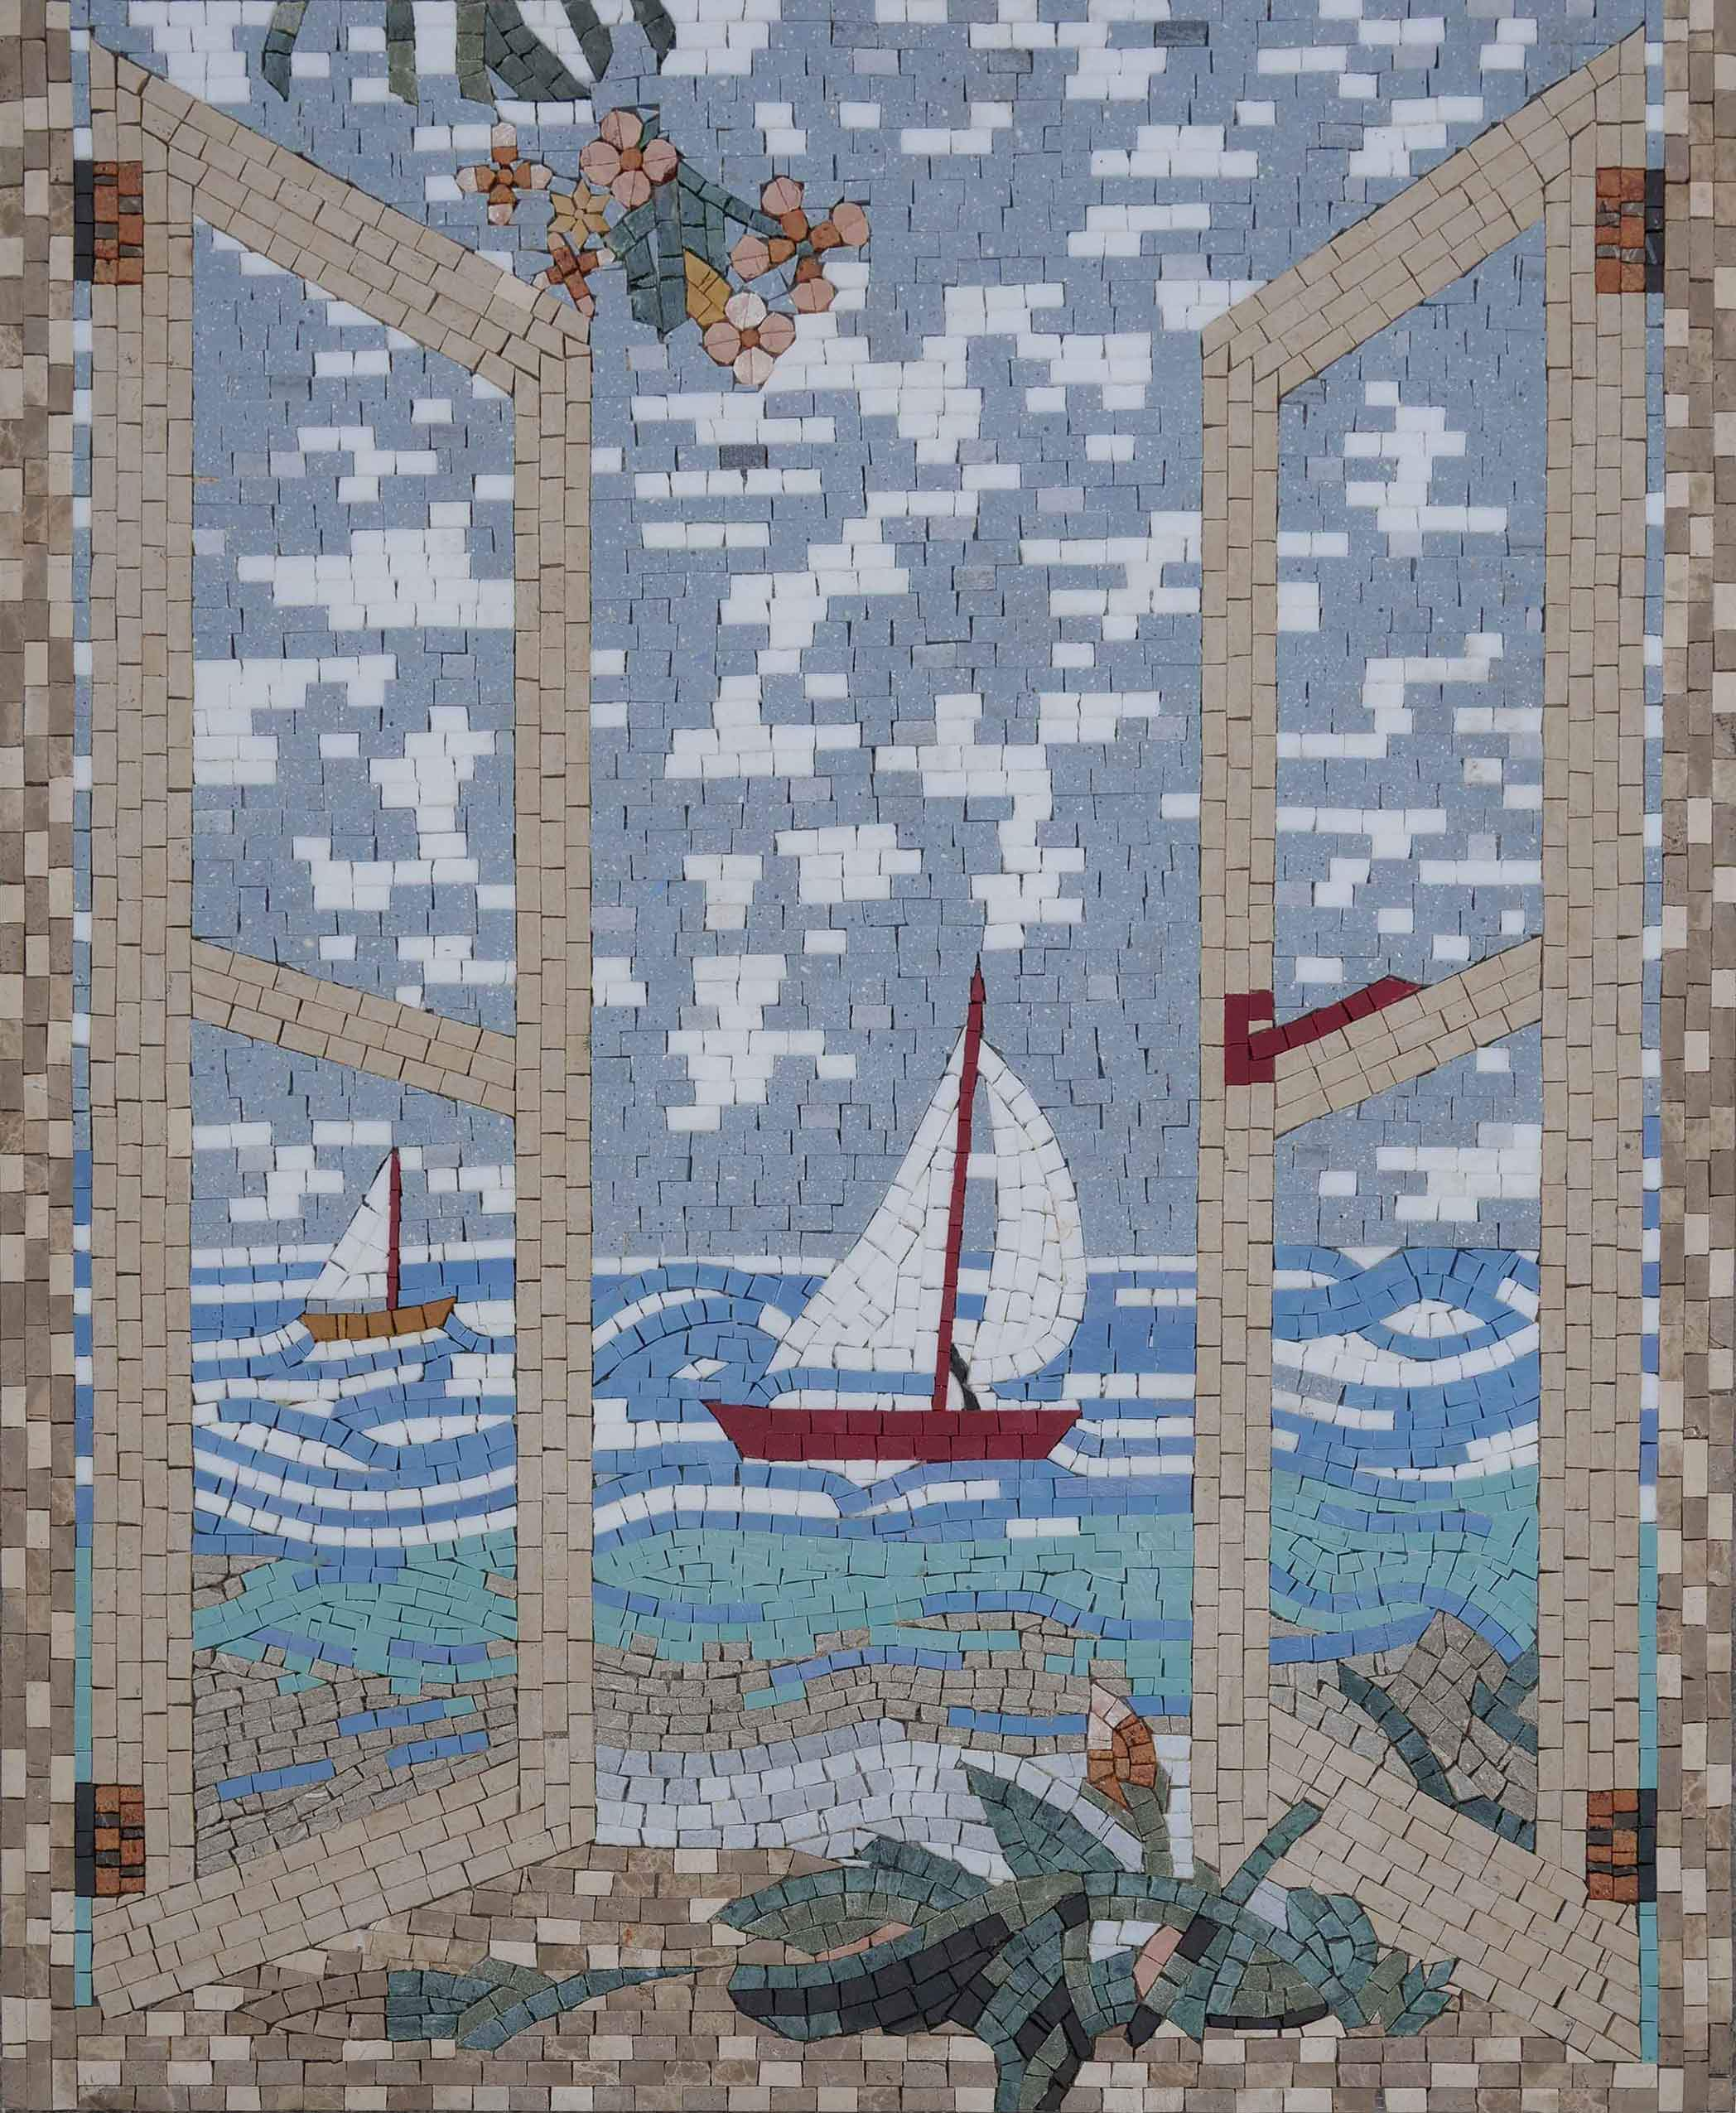 Sailing Balcony View Mosaic Art Pic